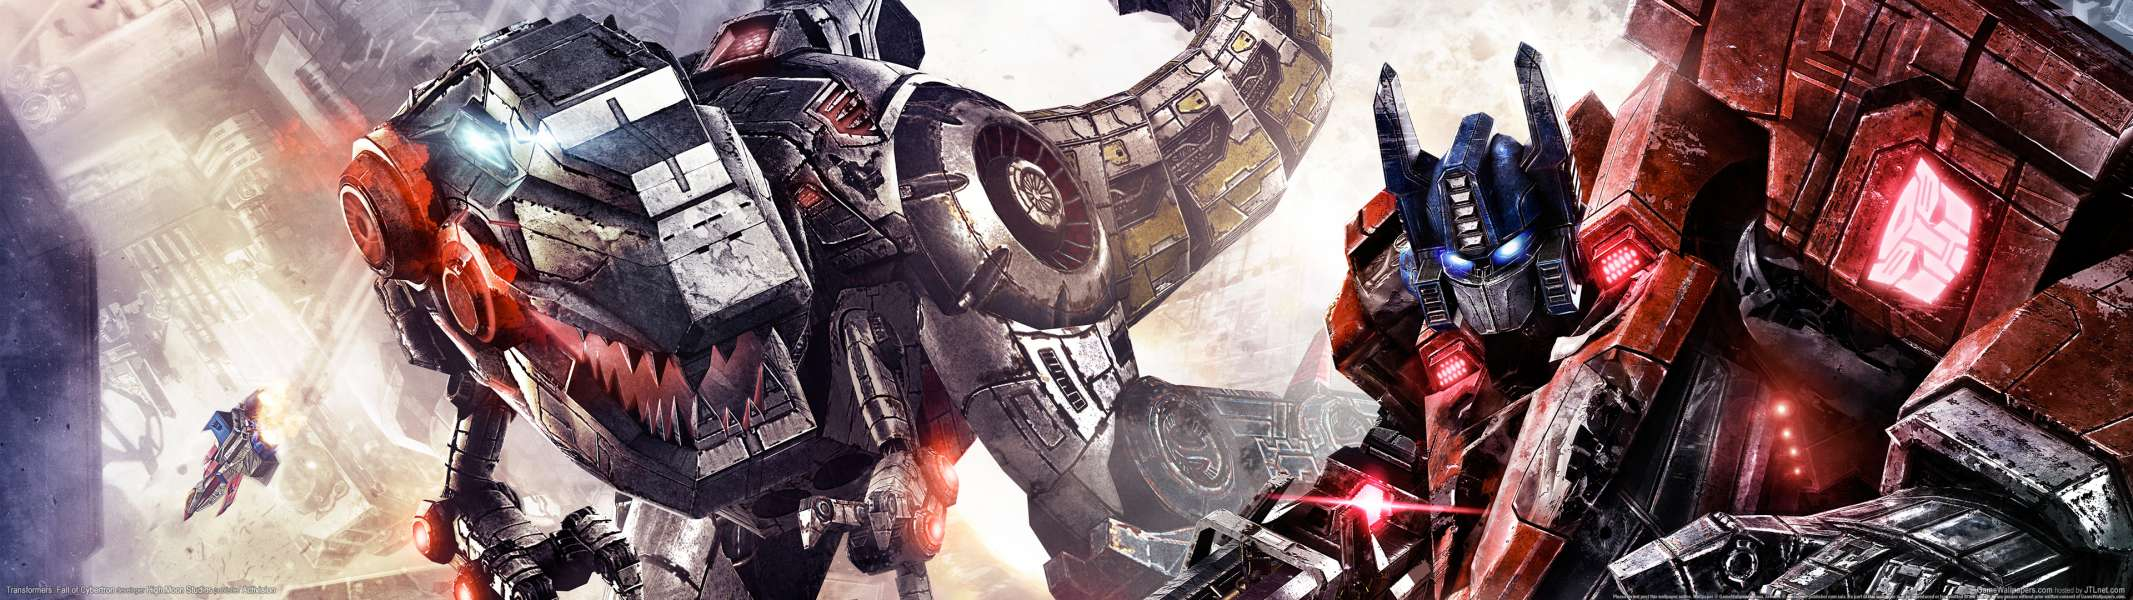 Transformers: Fall of Cybertron dual screen achtergrond